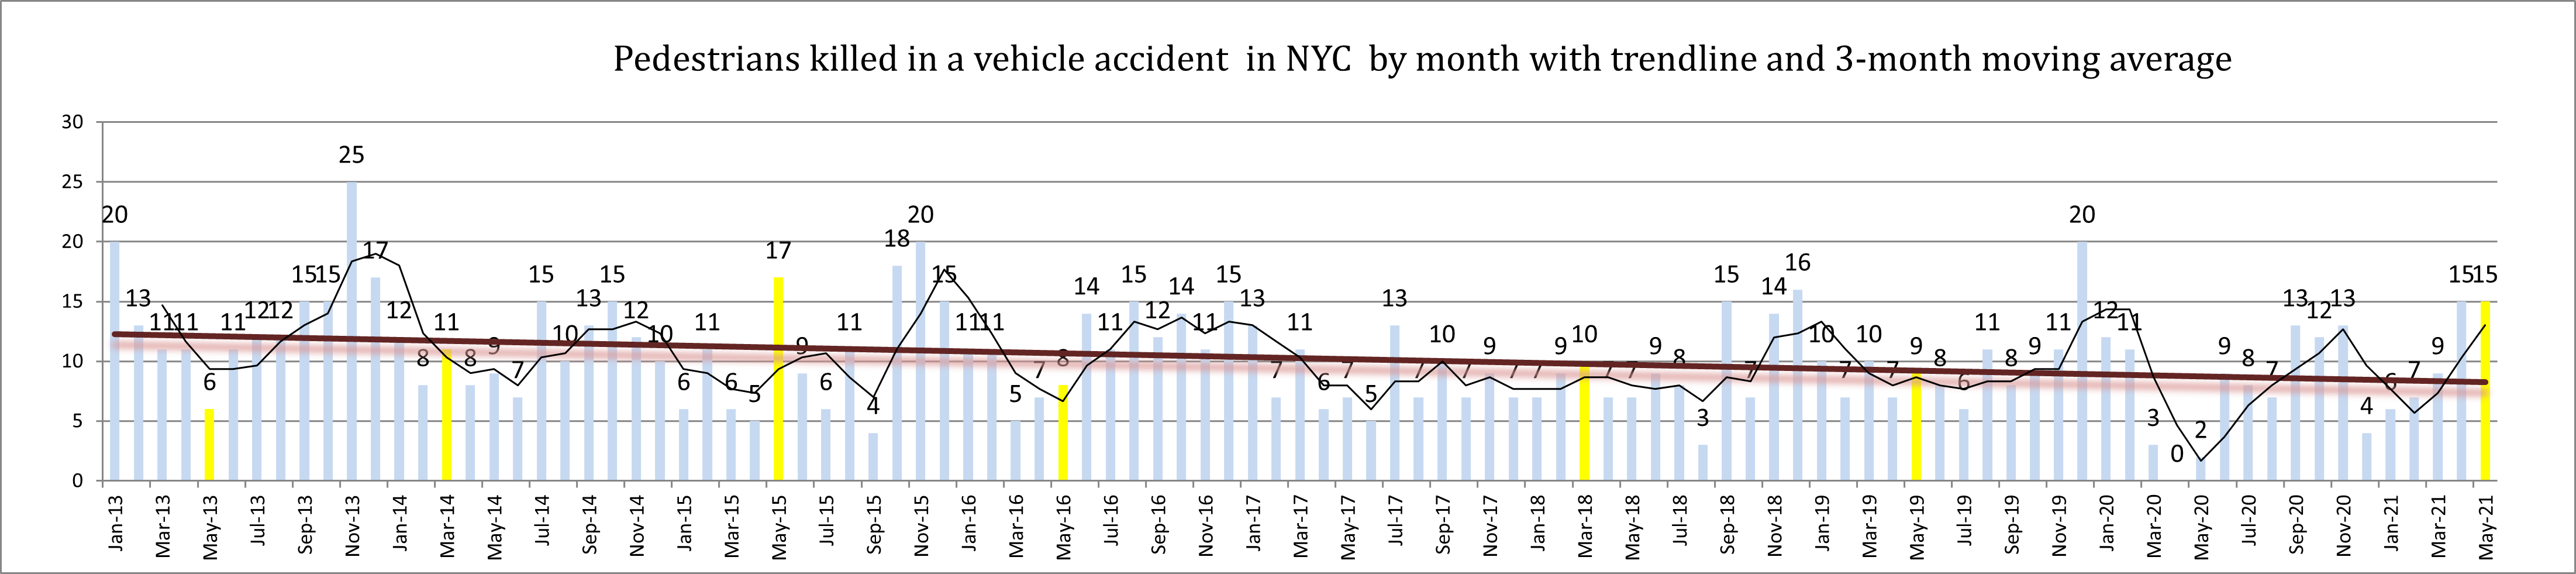 pedestrian accident fatalities New York City May 2021